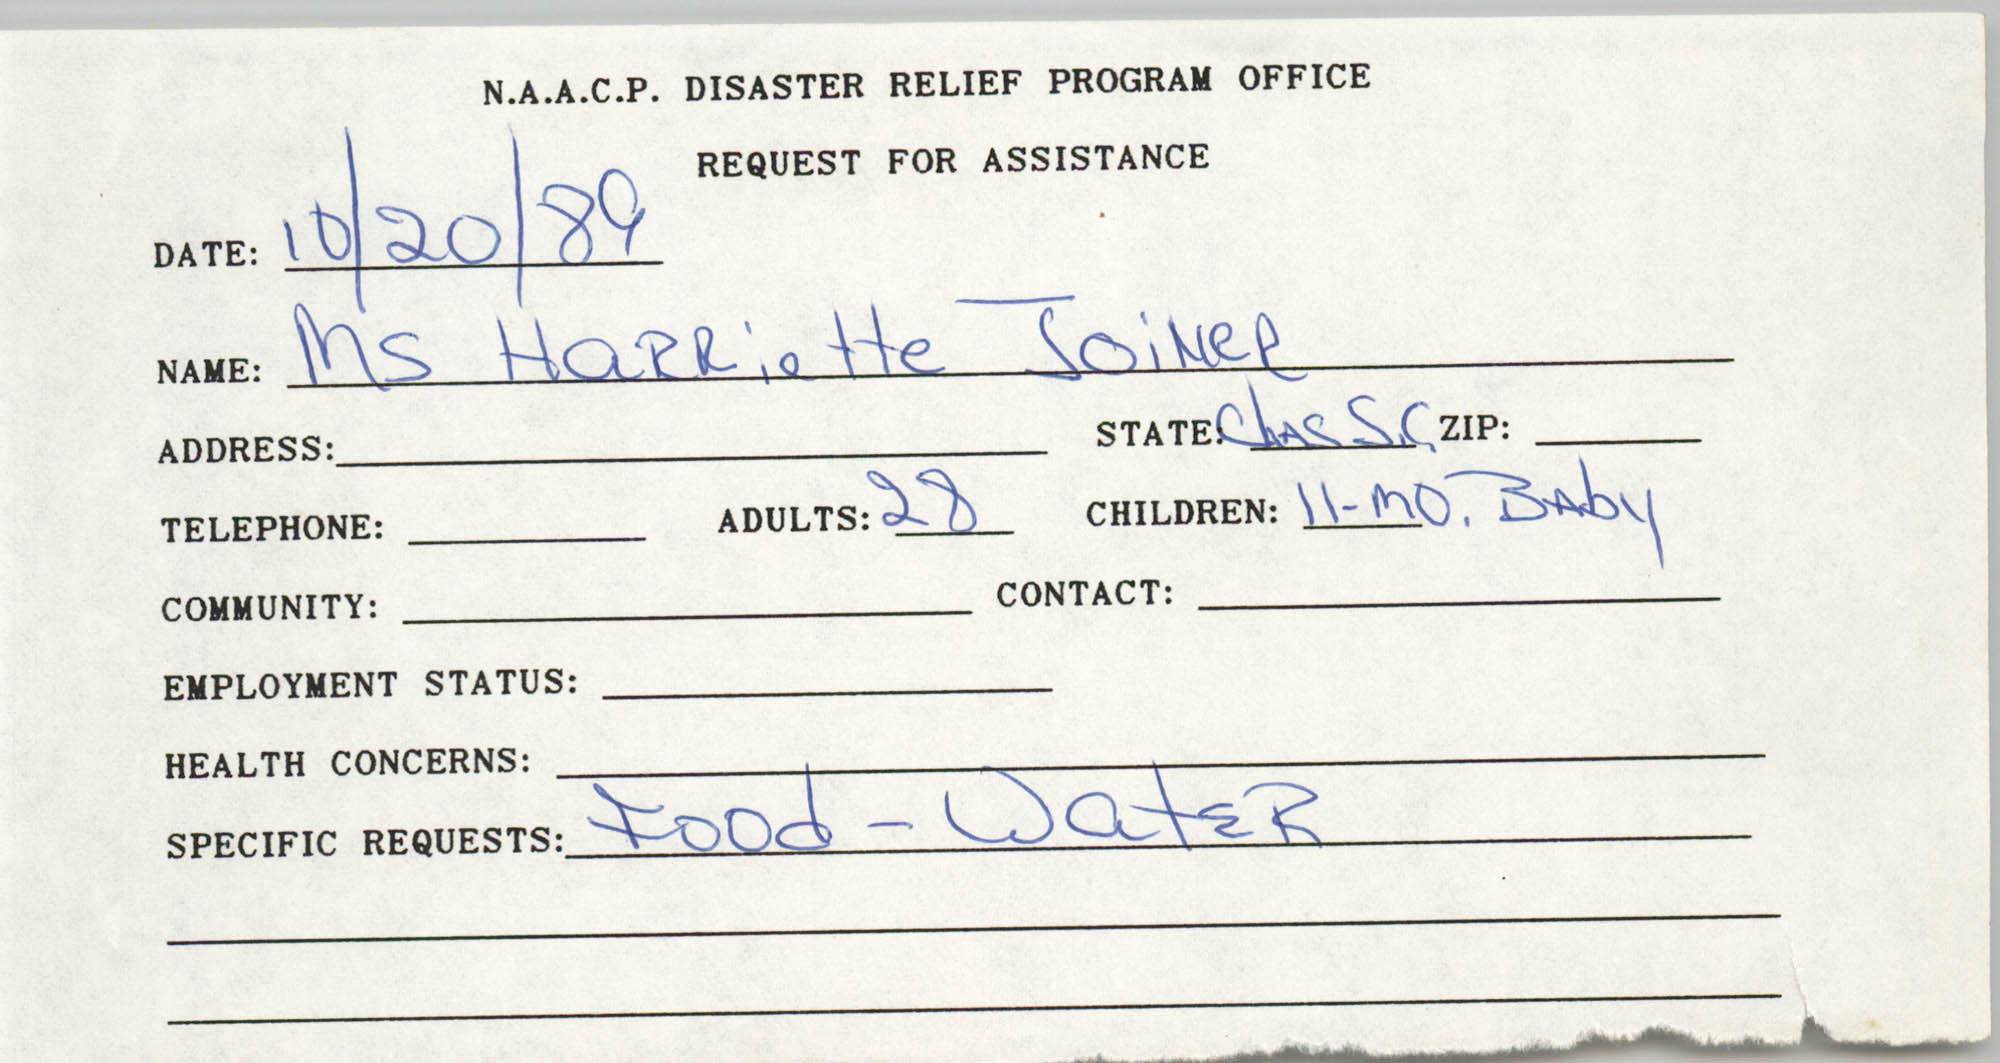 NAACP Disaster Relief Program Office, Hurricane Huge Requests for Assistance, 1989, Page 43